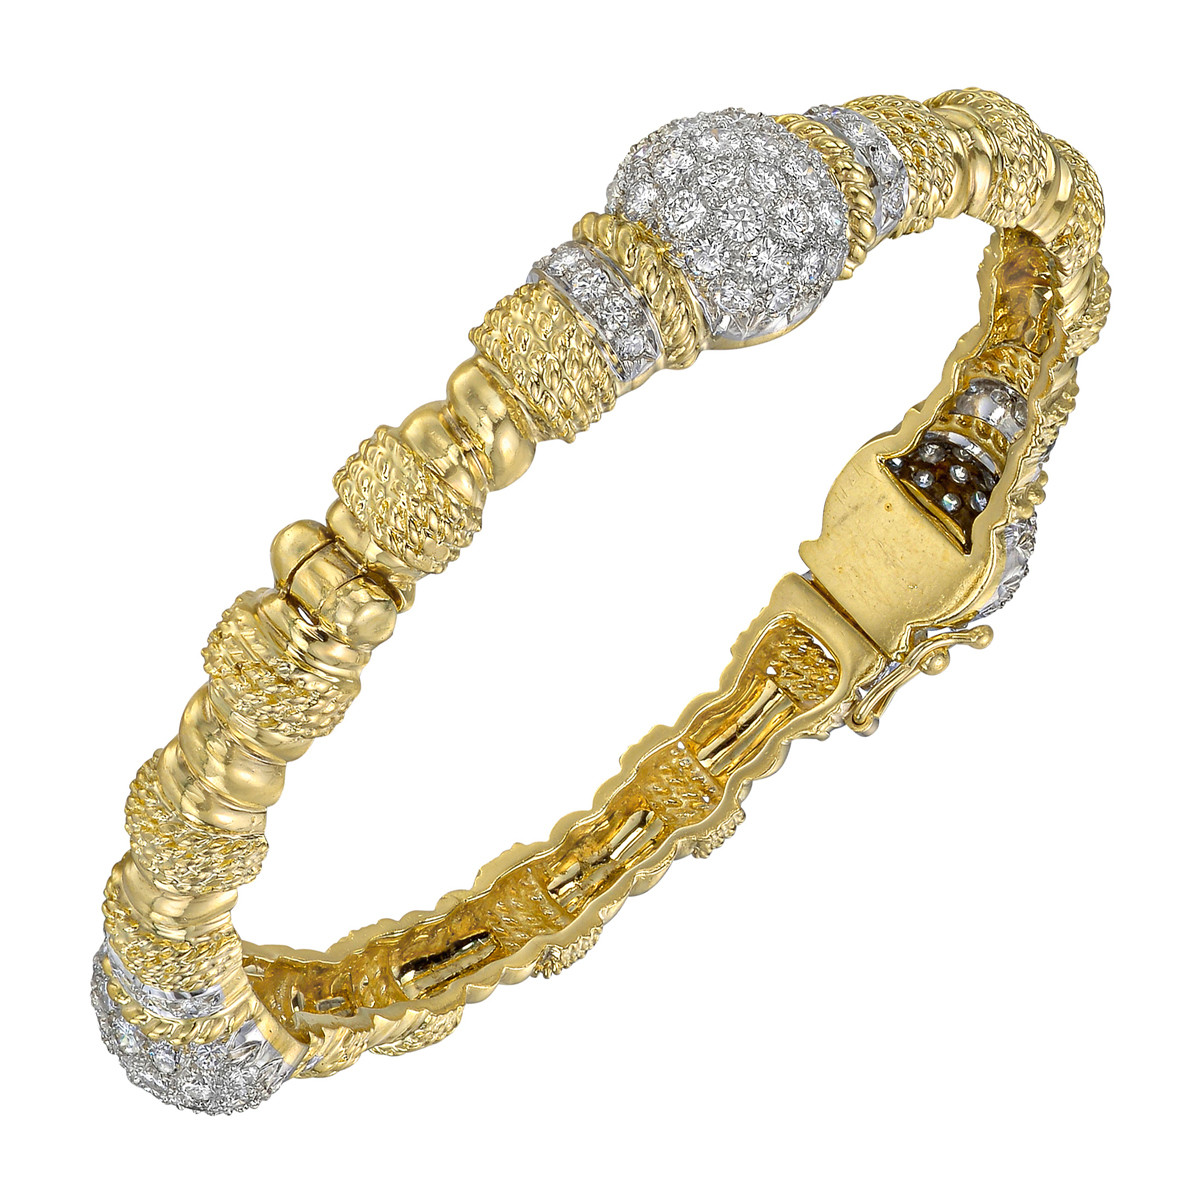 18k Yellow Gold & Diamond Bangle Bracelet